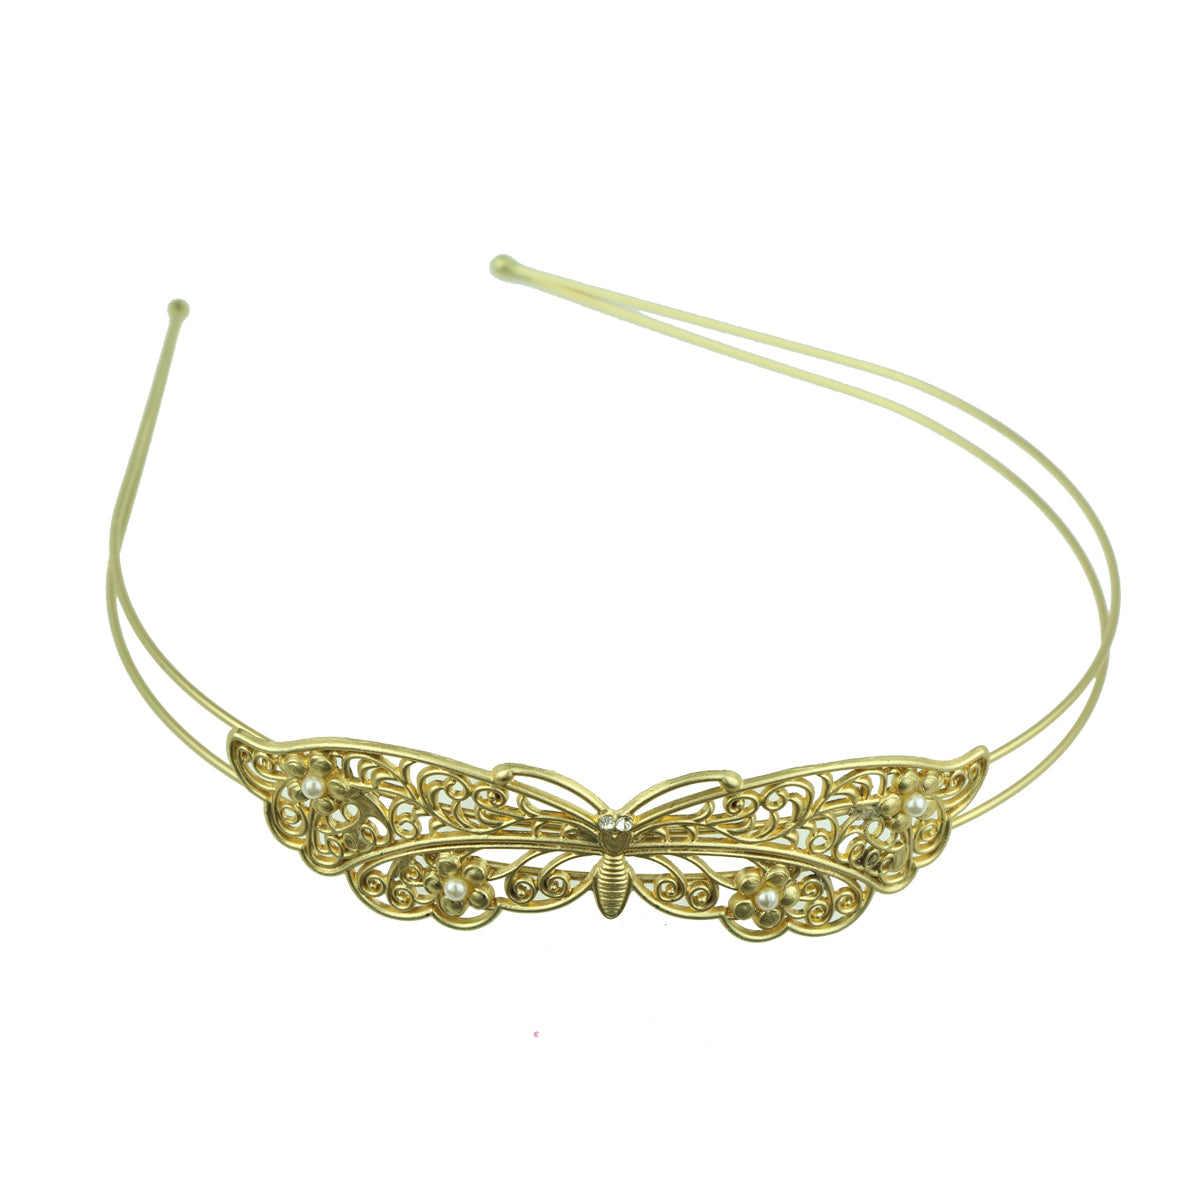 gold metal vintage hair accessory metallic butterfly with pears fashion fancy quality hairband headband made in Dongguan6881 - SOHOBUCKS CO.,LIMITED